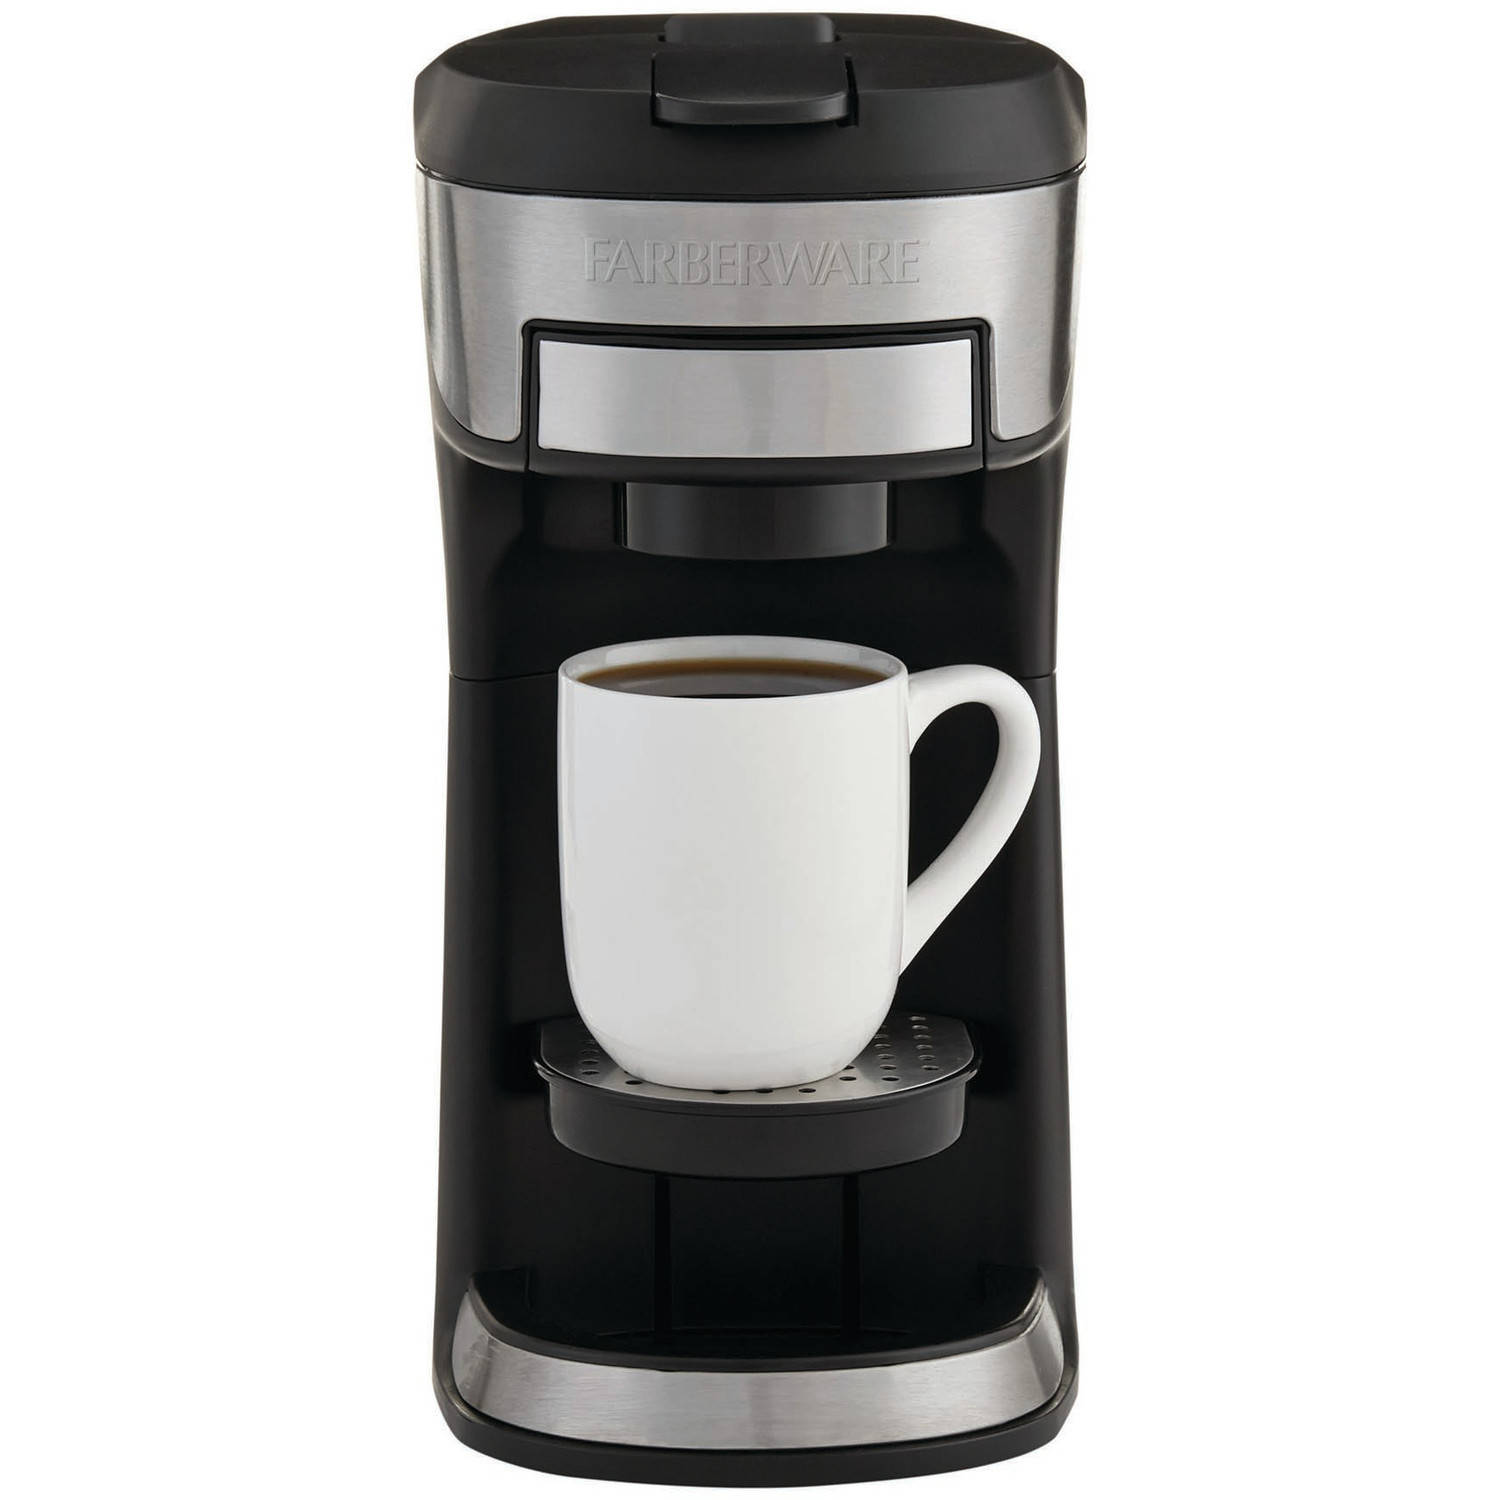 Faberware K-Cup Single-Serve Coffee Maker